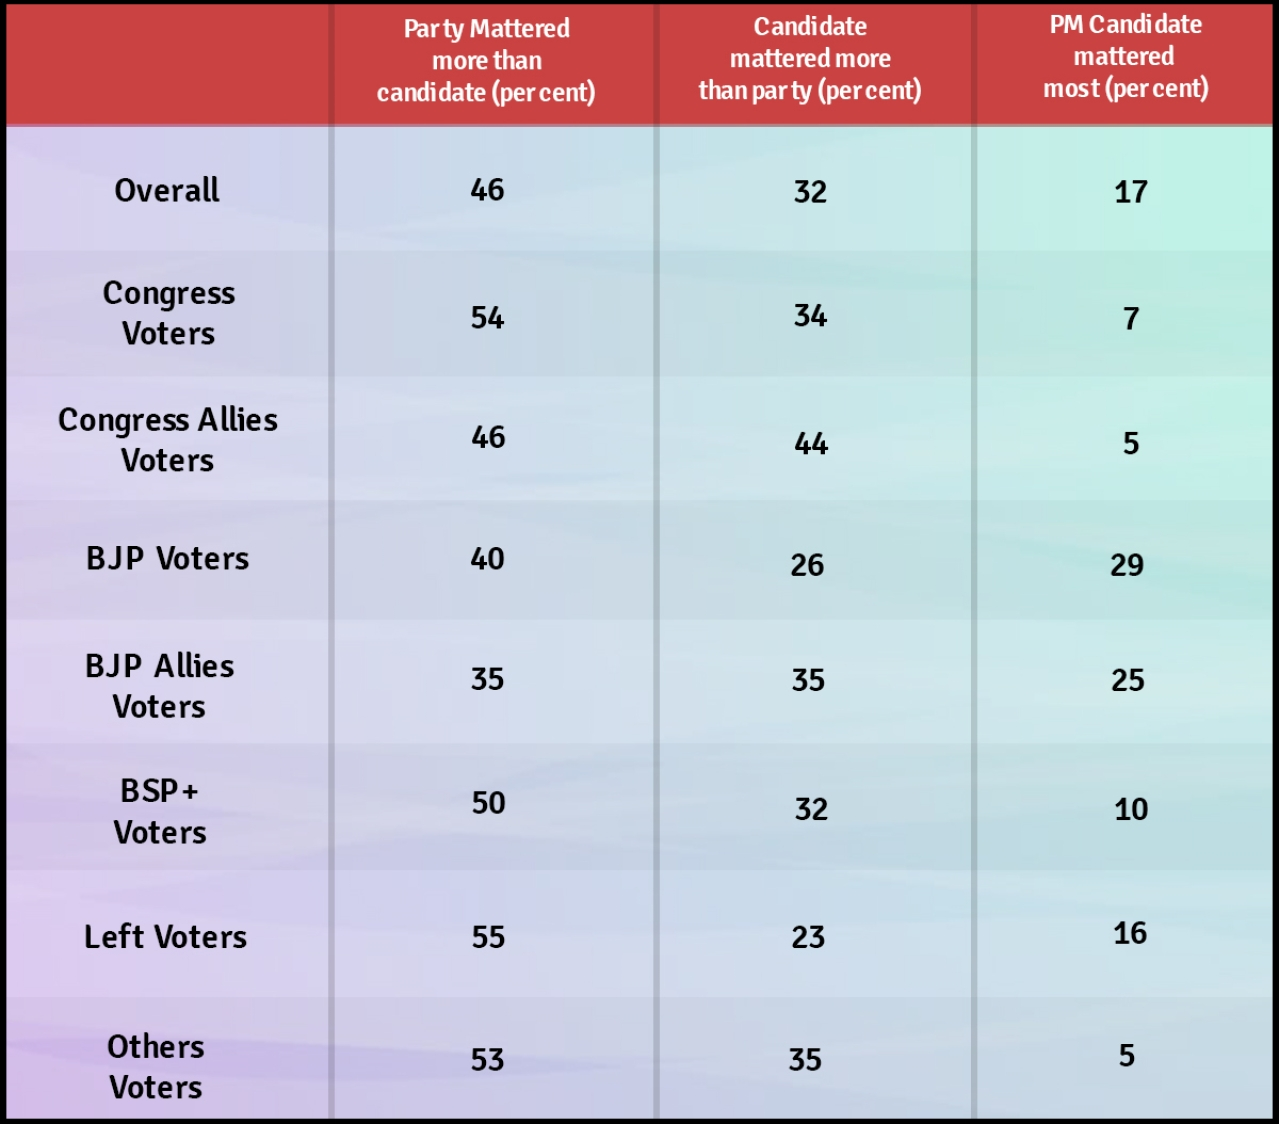 Data of voters for whom party/PM candidate/local candidate mattered most in percentages